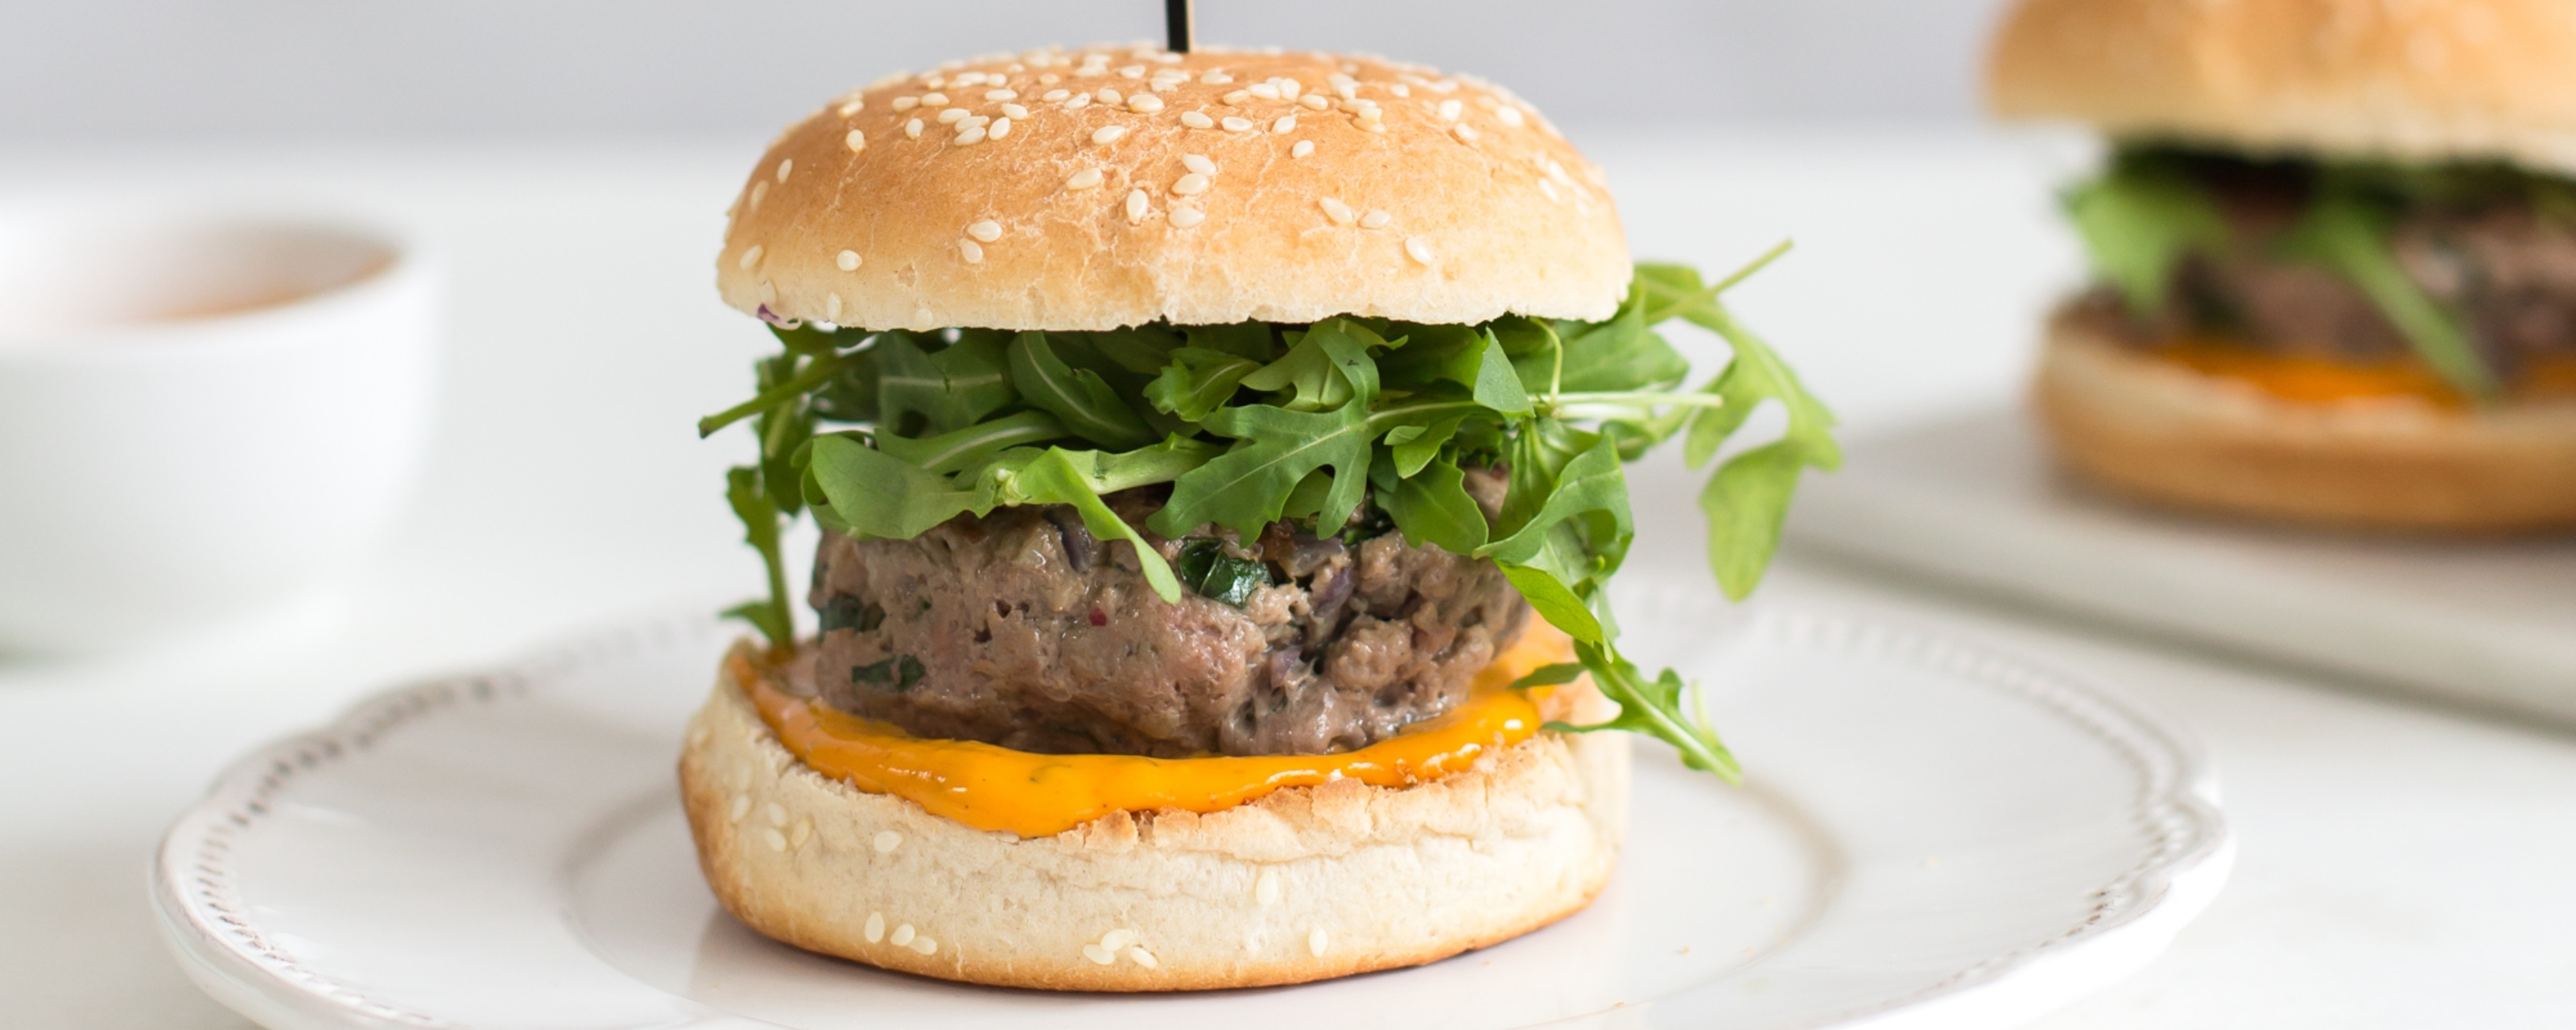 Homemade burger with cheese and rucola